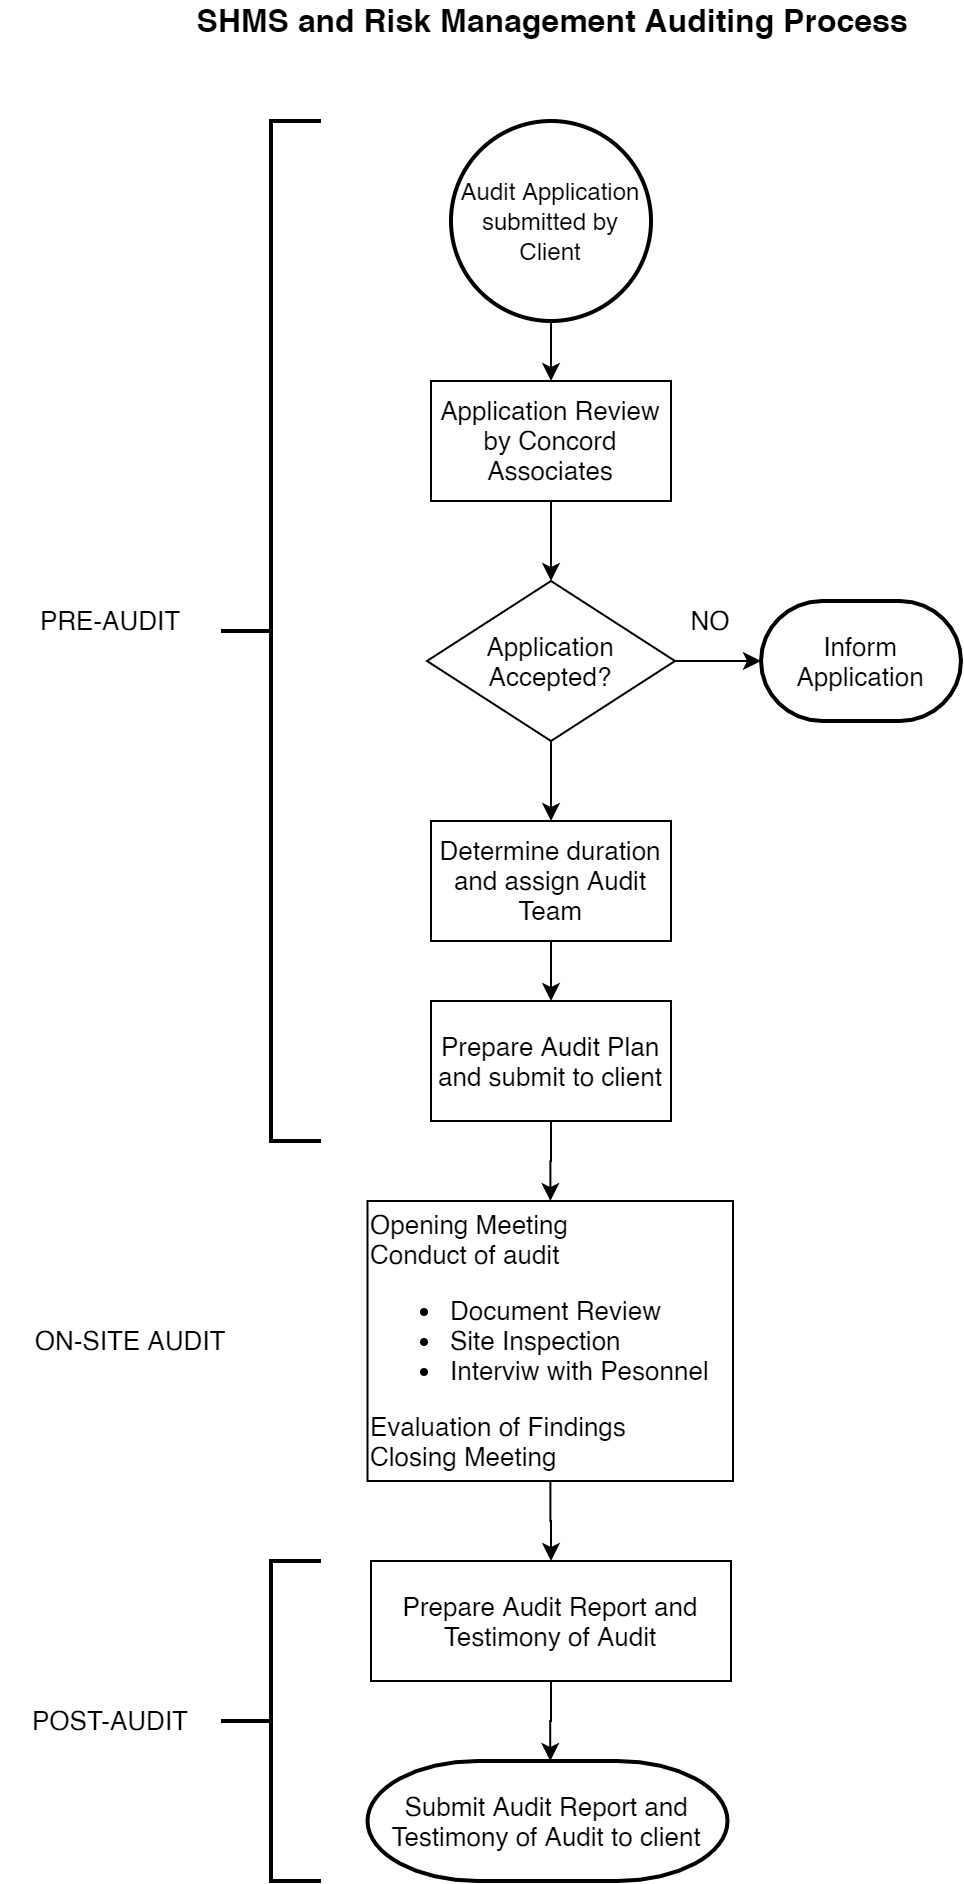 SHMS and Risk Management Auditing Process